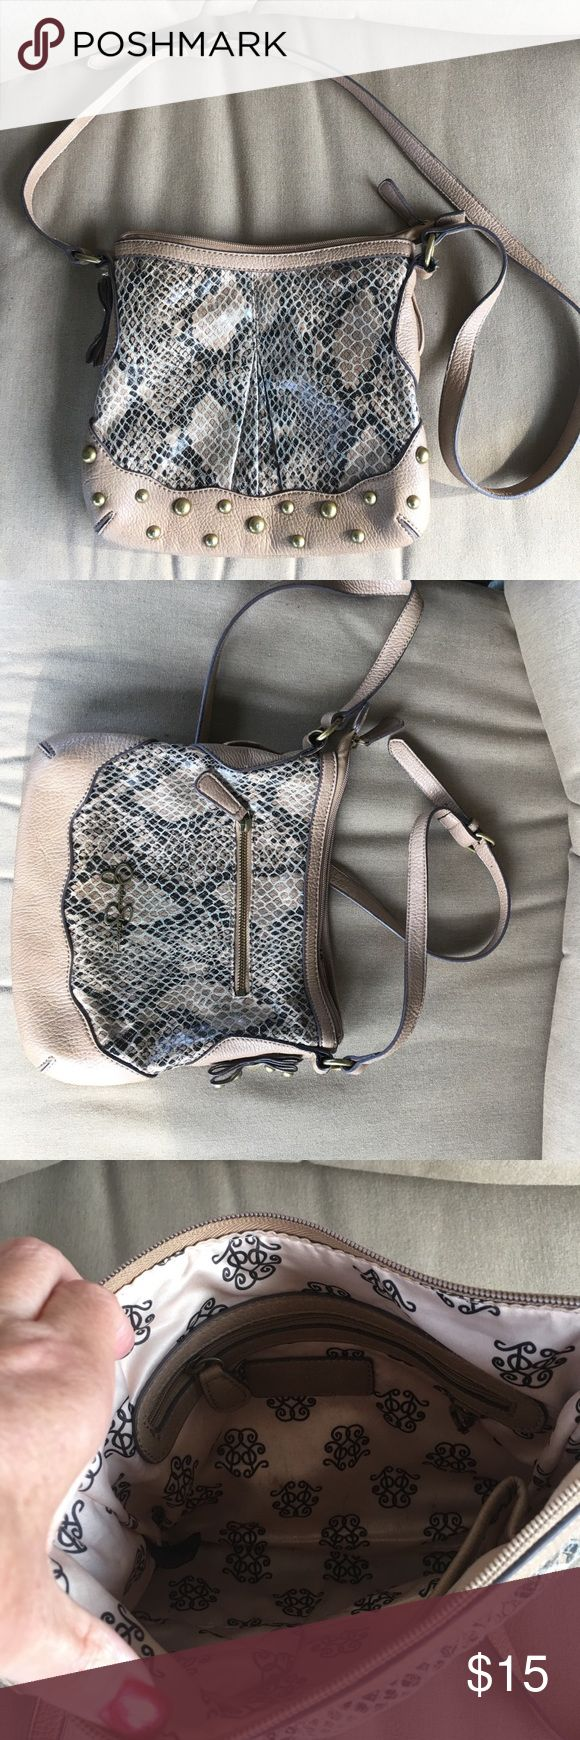 Jessica Simpson cross body snake print purse Purse is snake skin inspired, great preowned condition. Inside has a couple of pen marks. Jessica Simpson Bags Crossbody Bags